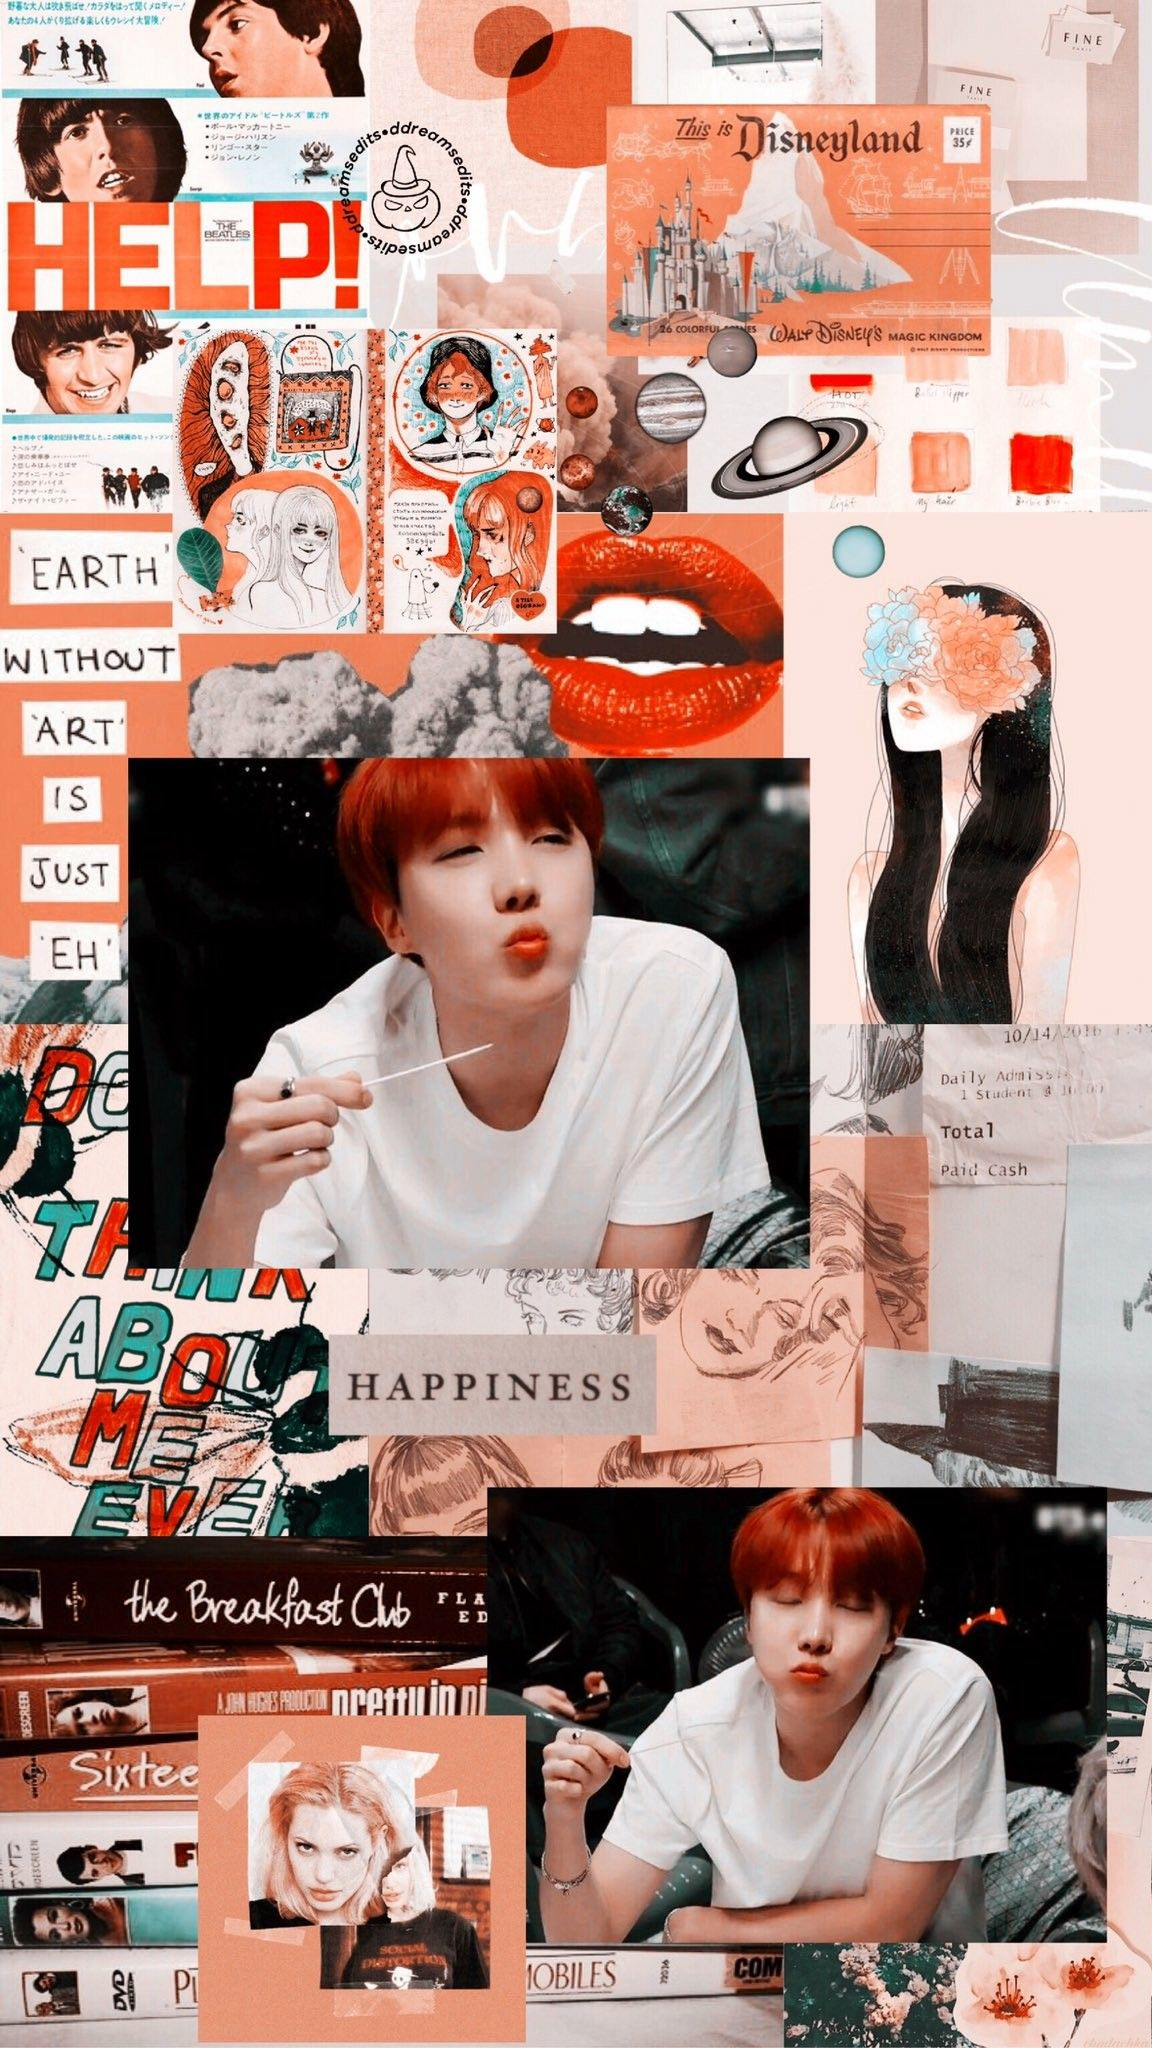 jhope aesthetic wallpaper credits to